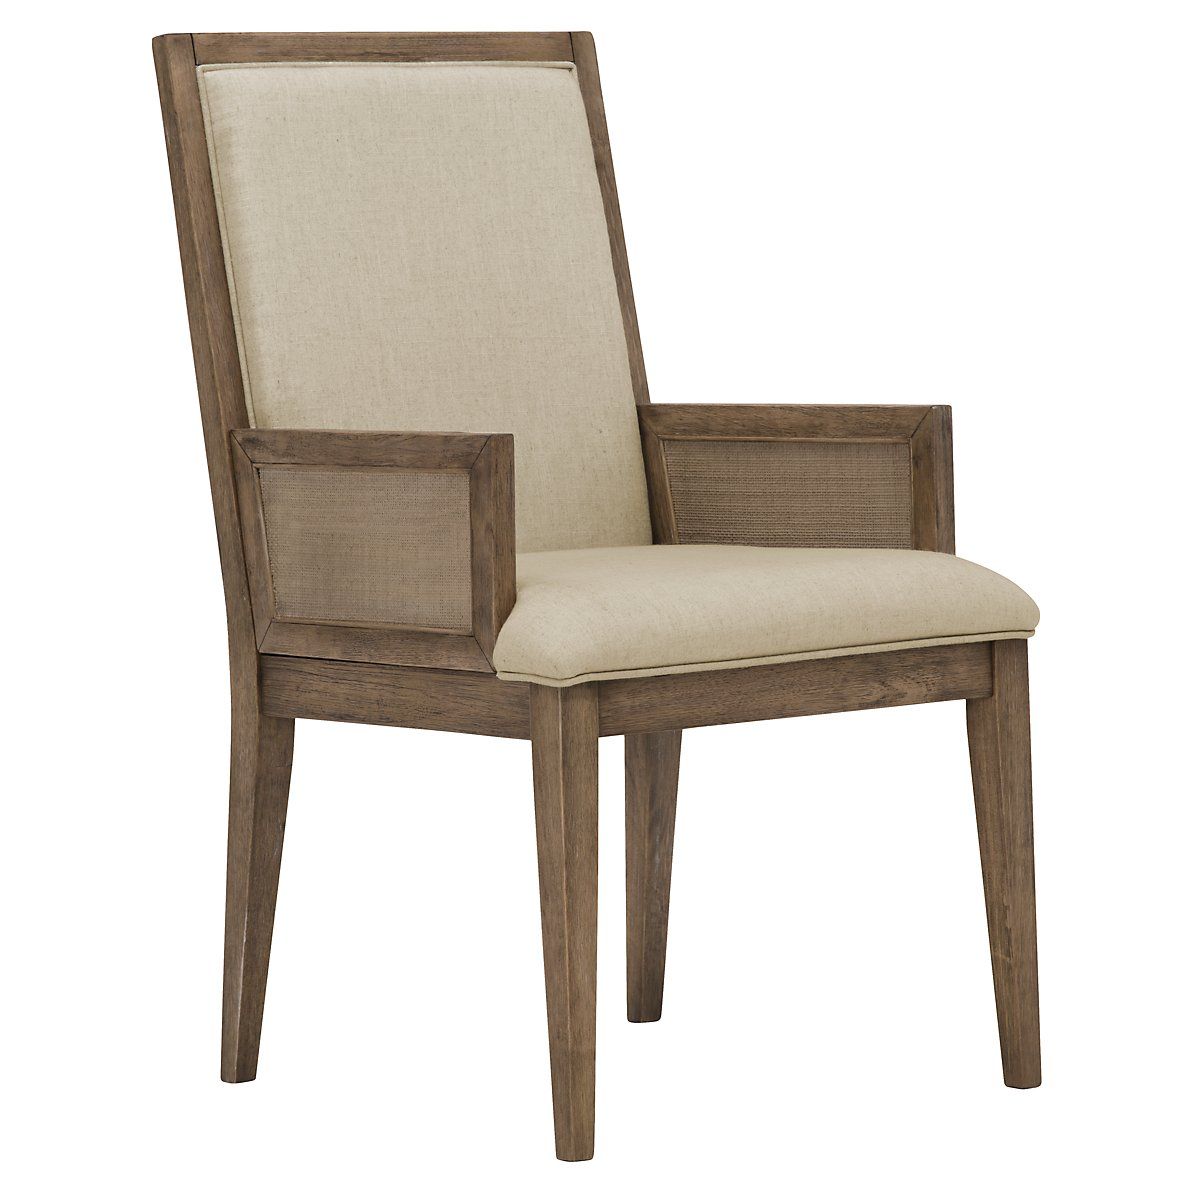 Mirabelle Light Tone Upholstered Upholstered Arm Chair